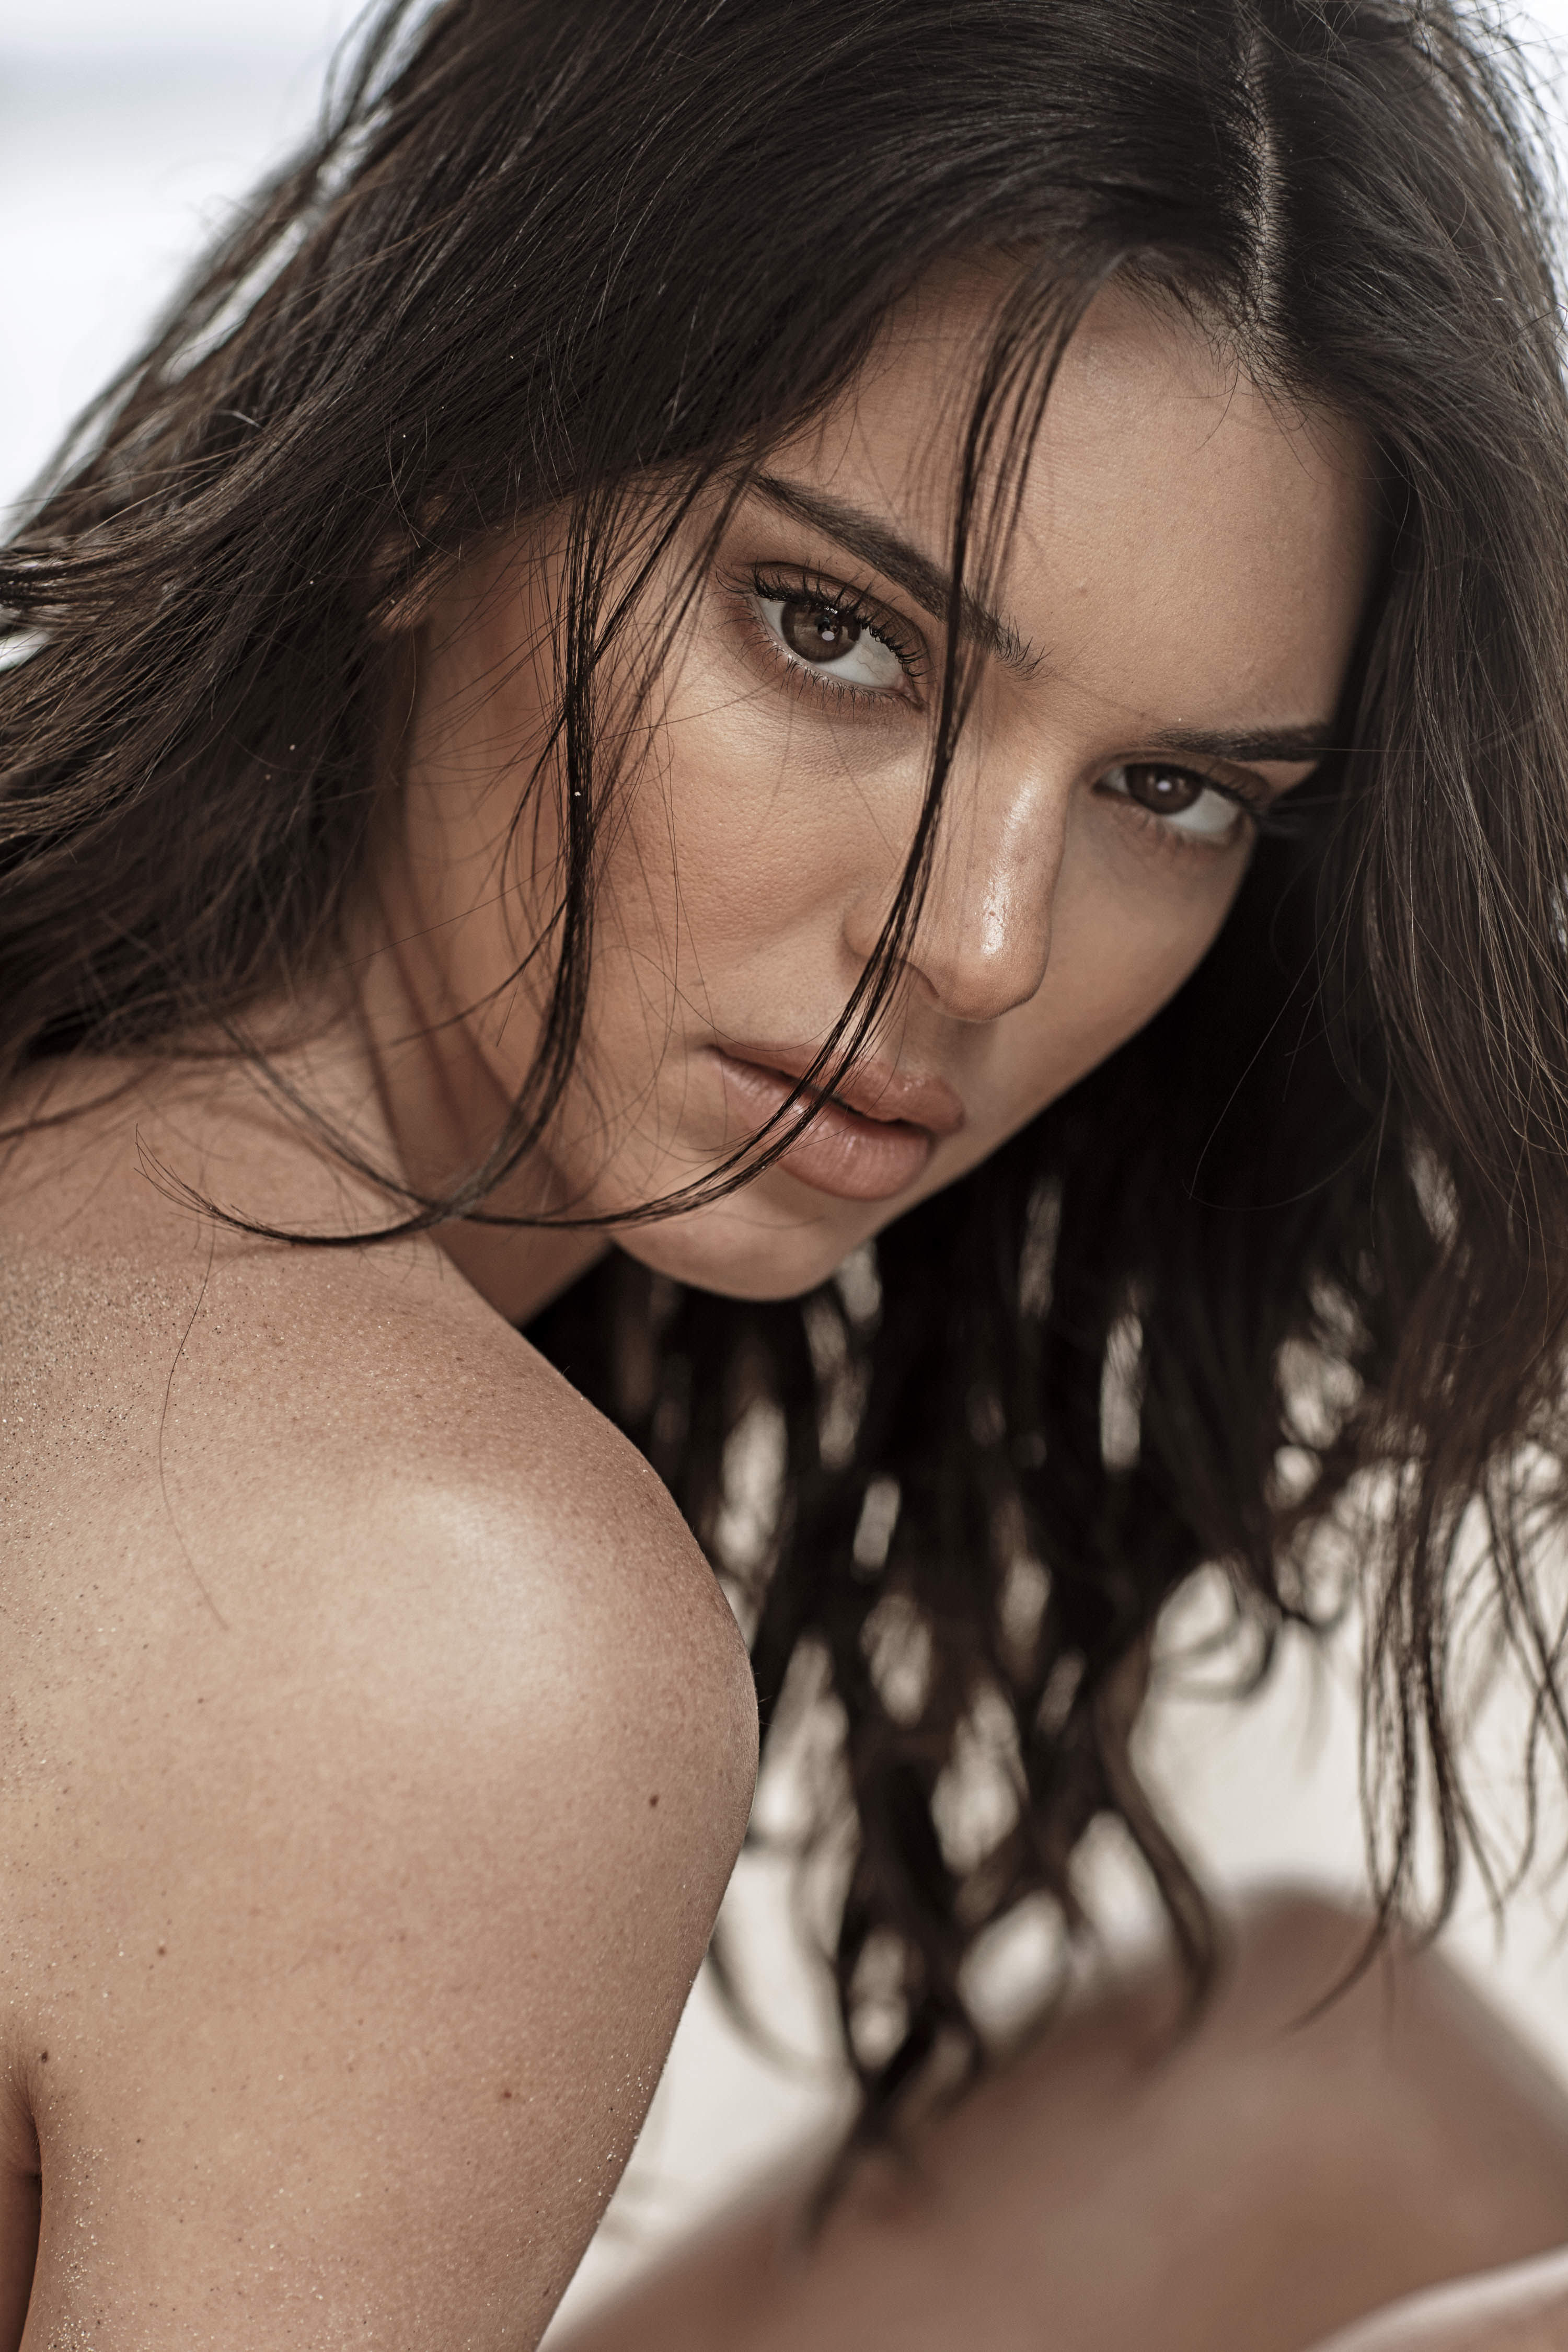 0810235419680_15_Kendall-Jenner-Nude-TheFappeningBlog.com-16.jpg